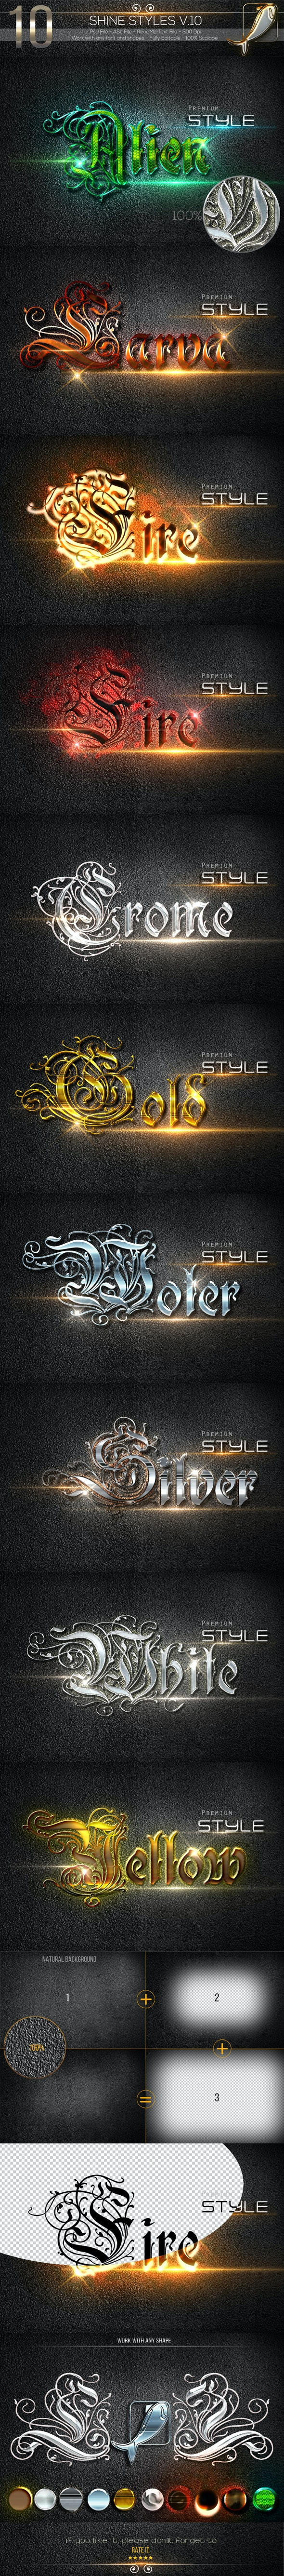 10 Shine Styles V.10 - Text Effects Styles